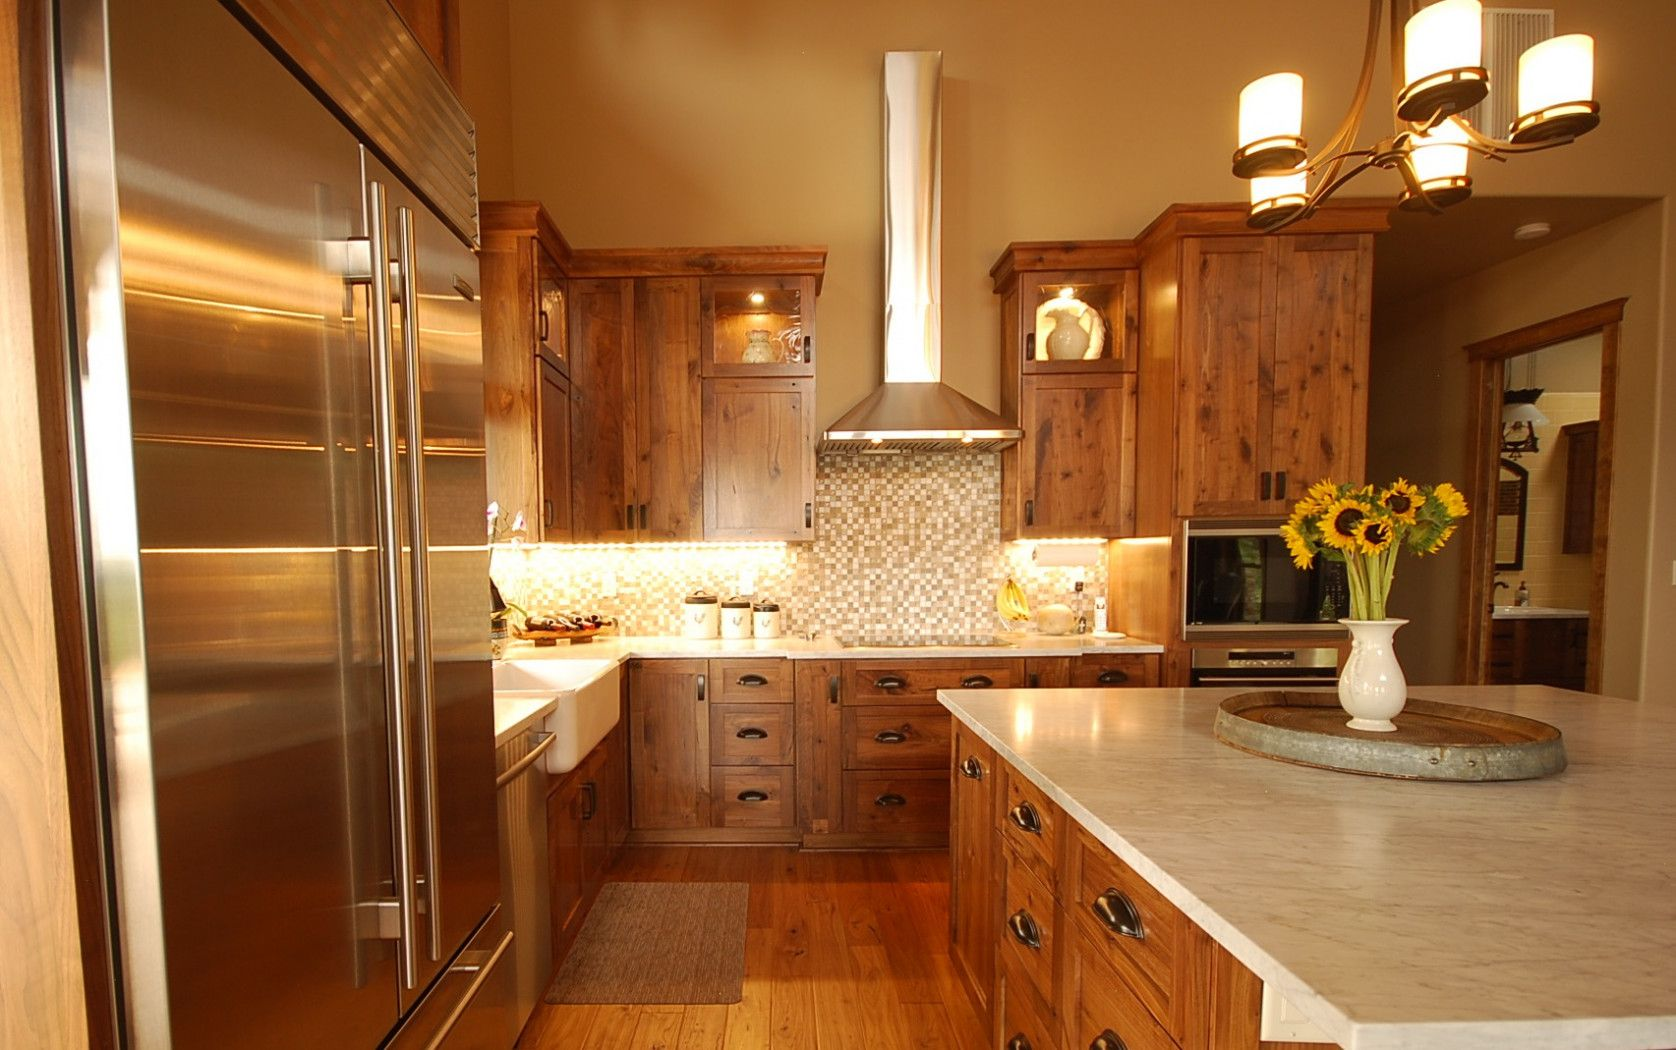 2019 custom made cabinet pulls best kitchen cabinet ideas check more at http